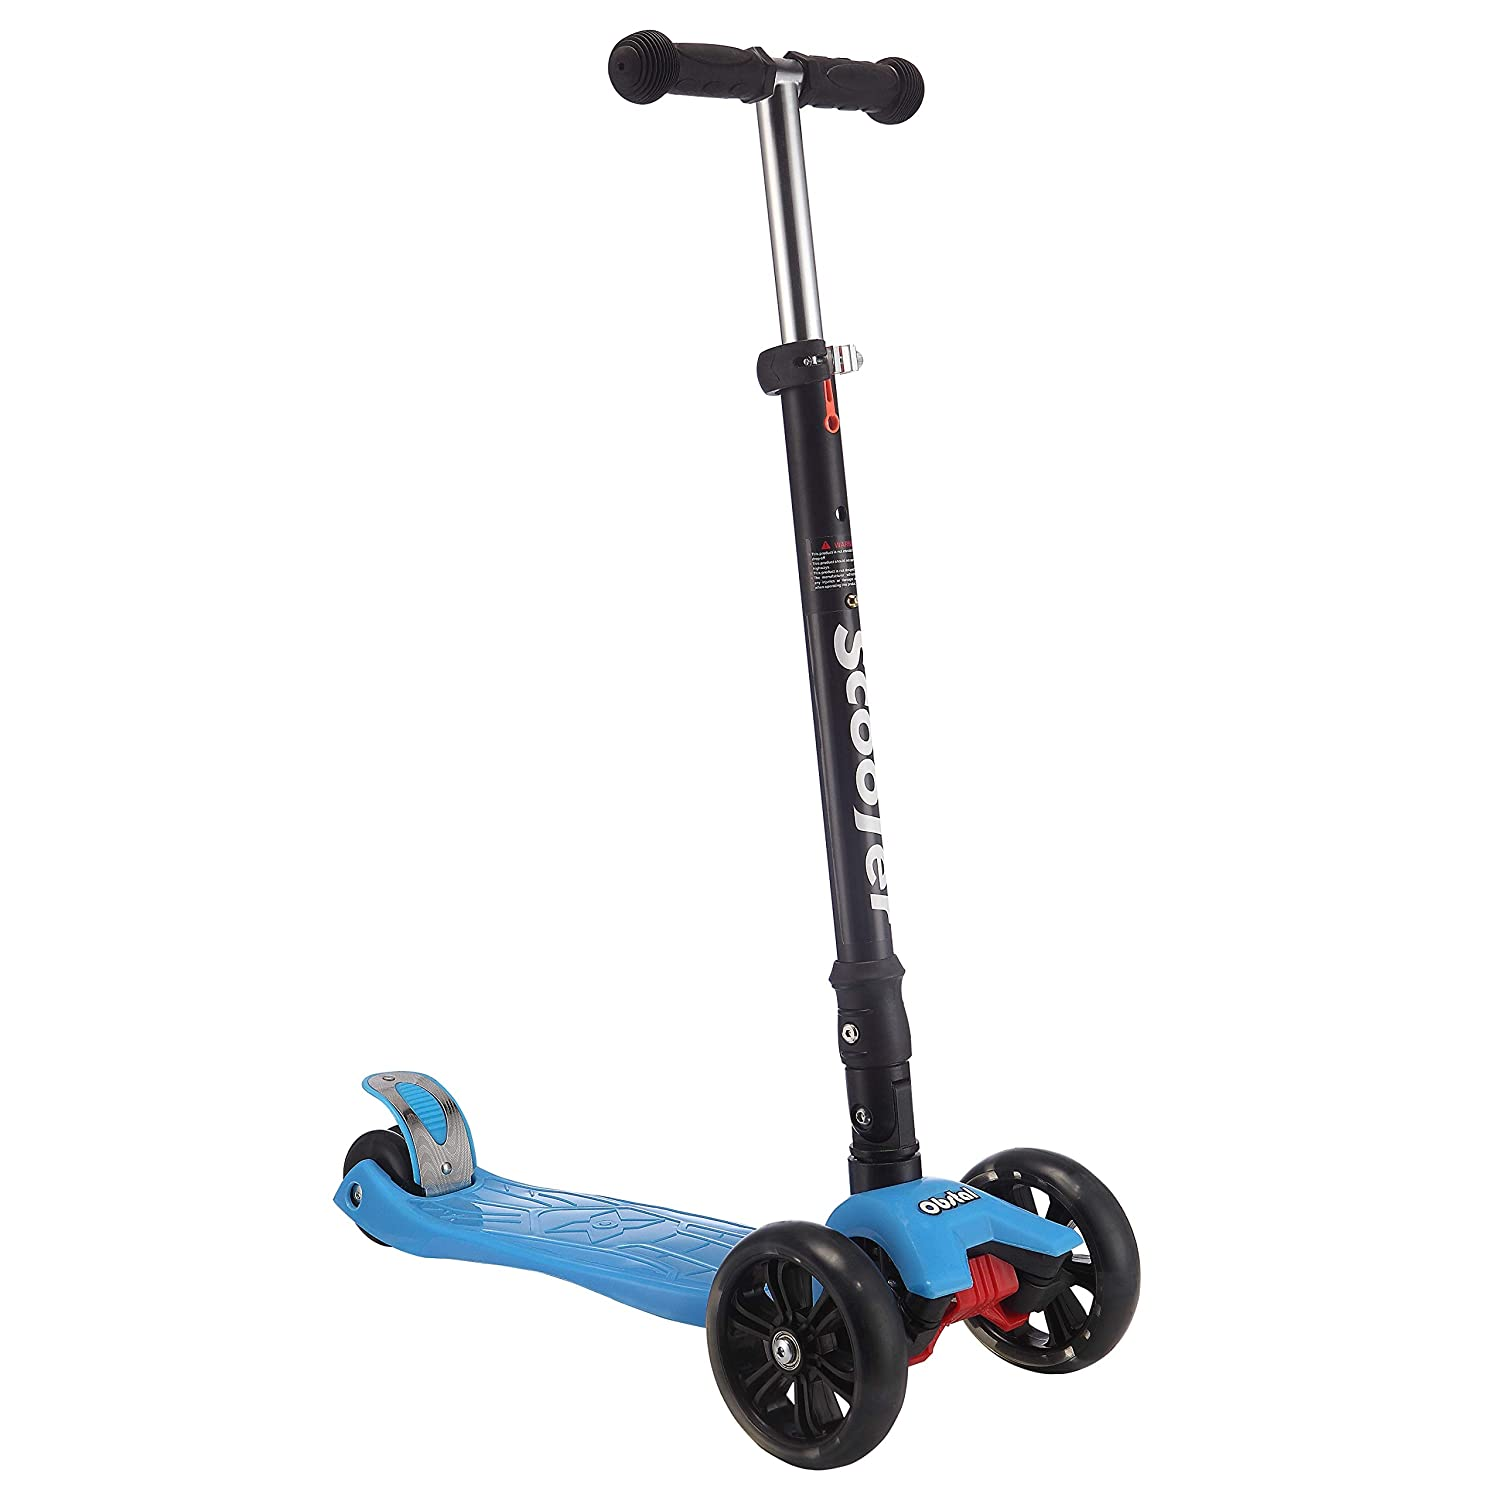 Adjustable Height Folding T-bar with Flashing Wheels Detachable T-bar with Flashing Wheels Pink Double /& Three Wheels Obstal Kick Scooter for Kids